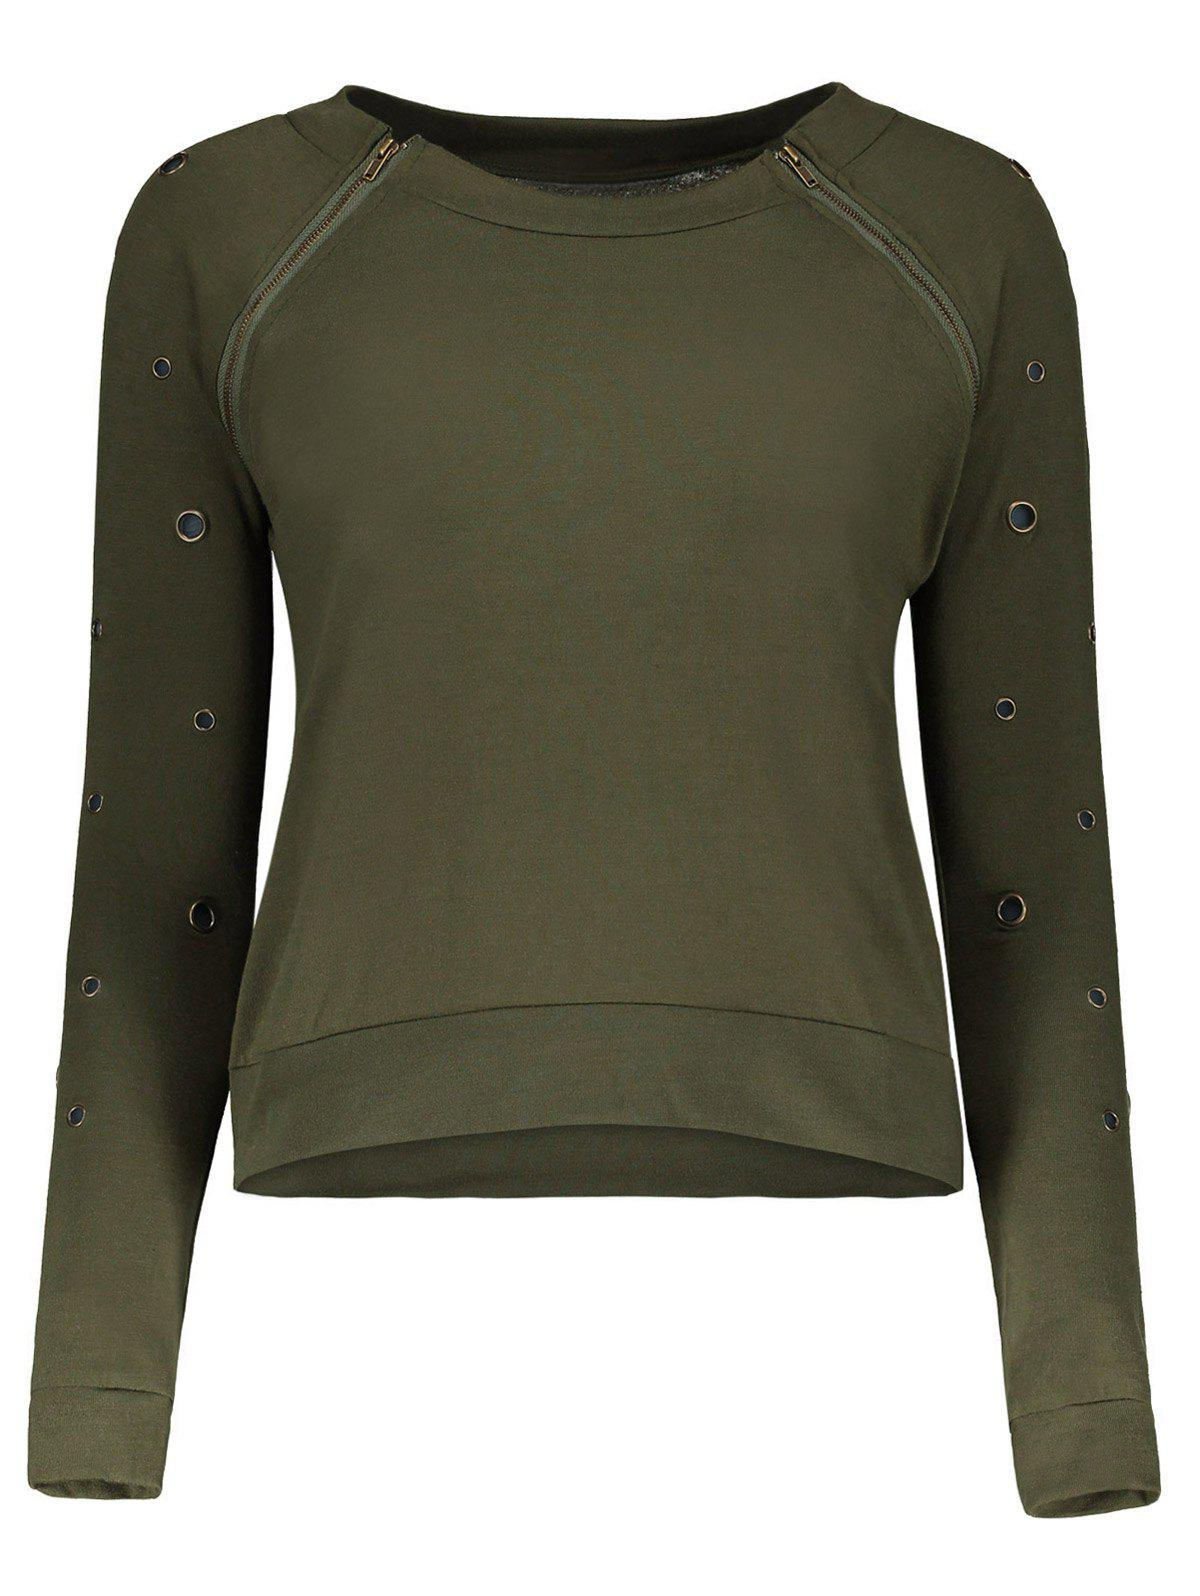 Army green stylish scoop neck long sleeve army green hole for Scoop neck long sleeve shirt